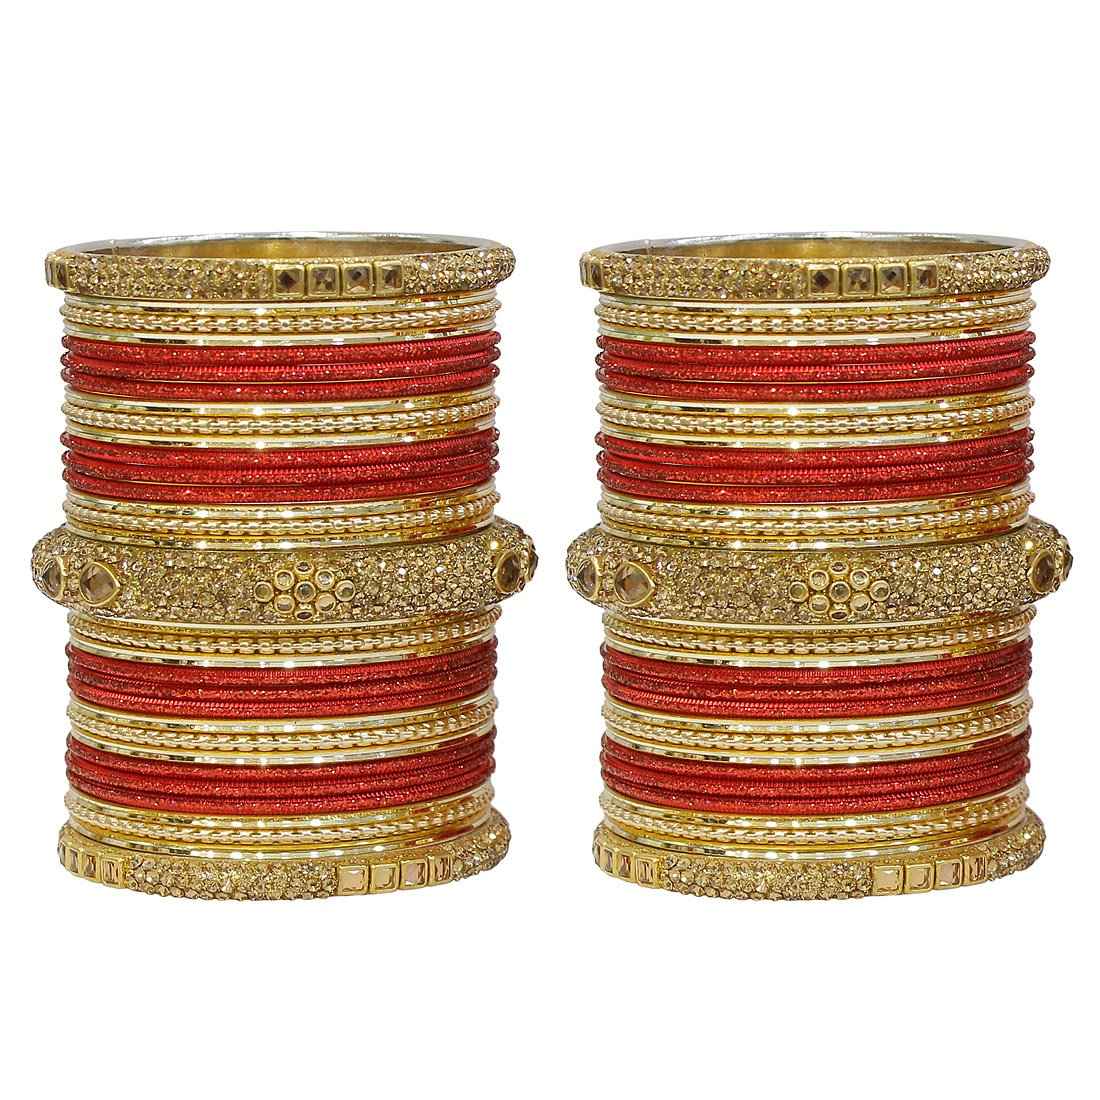 MUCH-MORE Marvelous 18 Pieces of Multicolor Bangles Set with Dashing Kade Traditional Indian Partywear Jewelry for Women /& Girls Red, 2.4